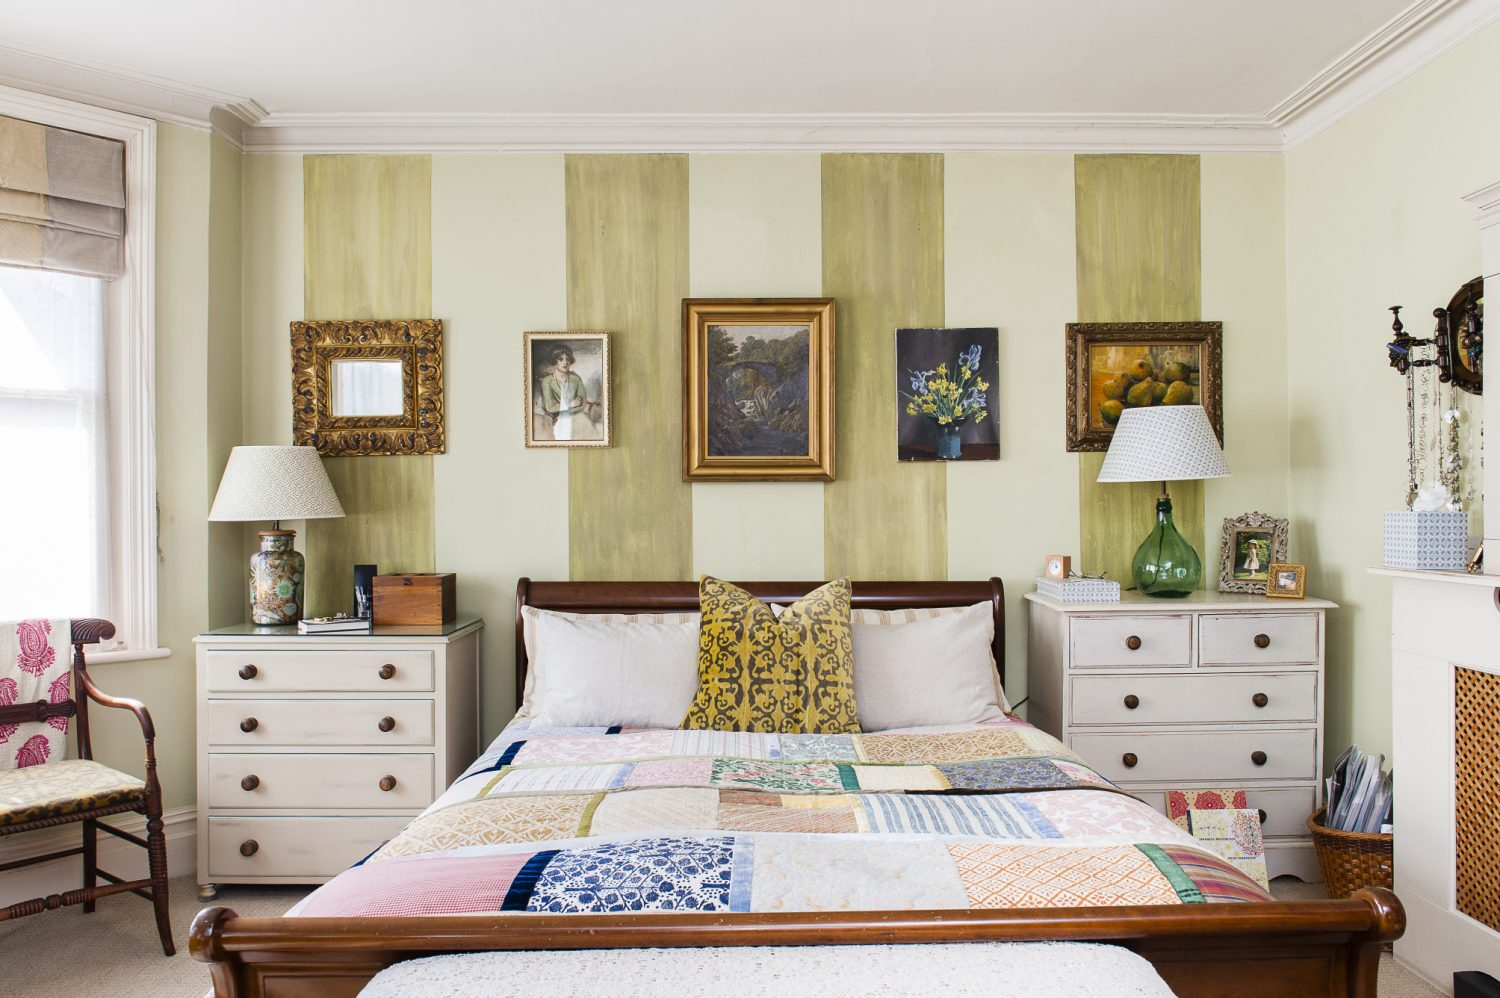 The quilt in the master bedroom is made from squares of fabric that Trudi printed by hand. On a bedside table, a decoupage jar has been turned into a table lamp